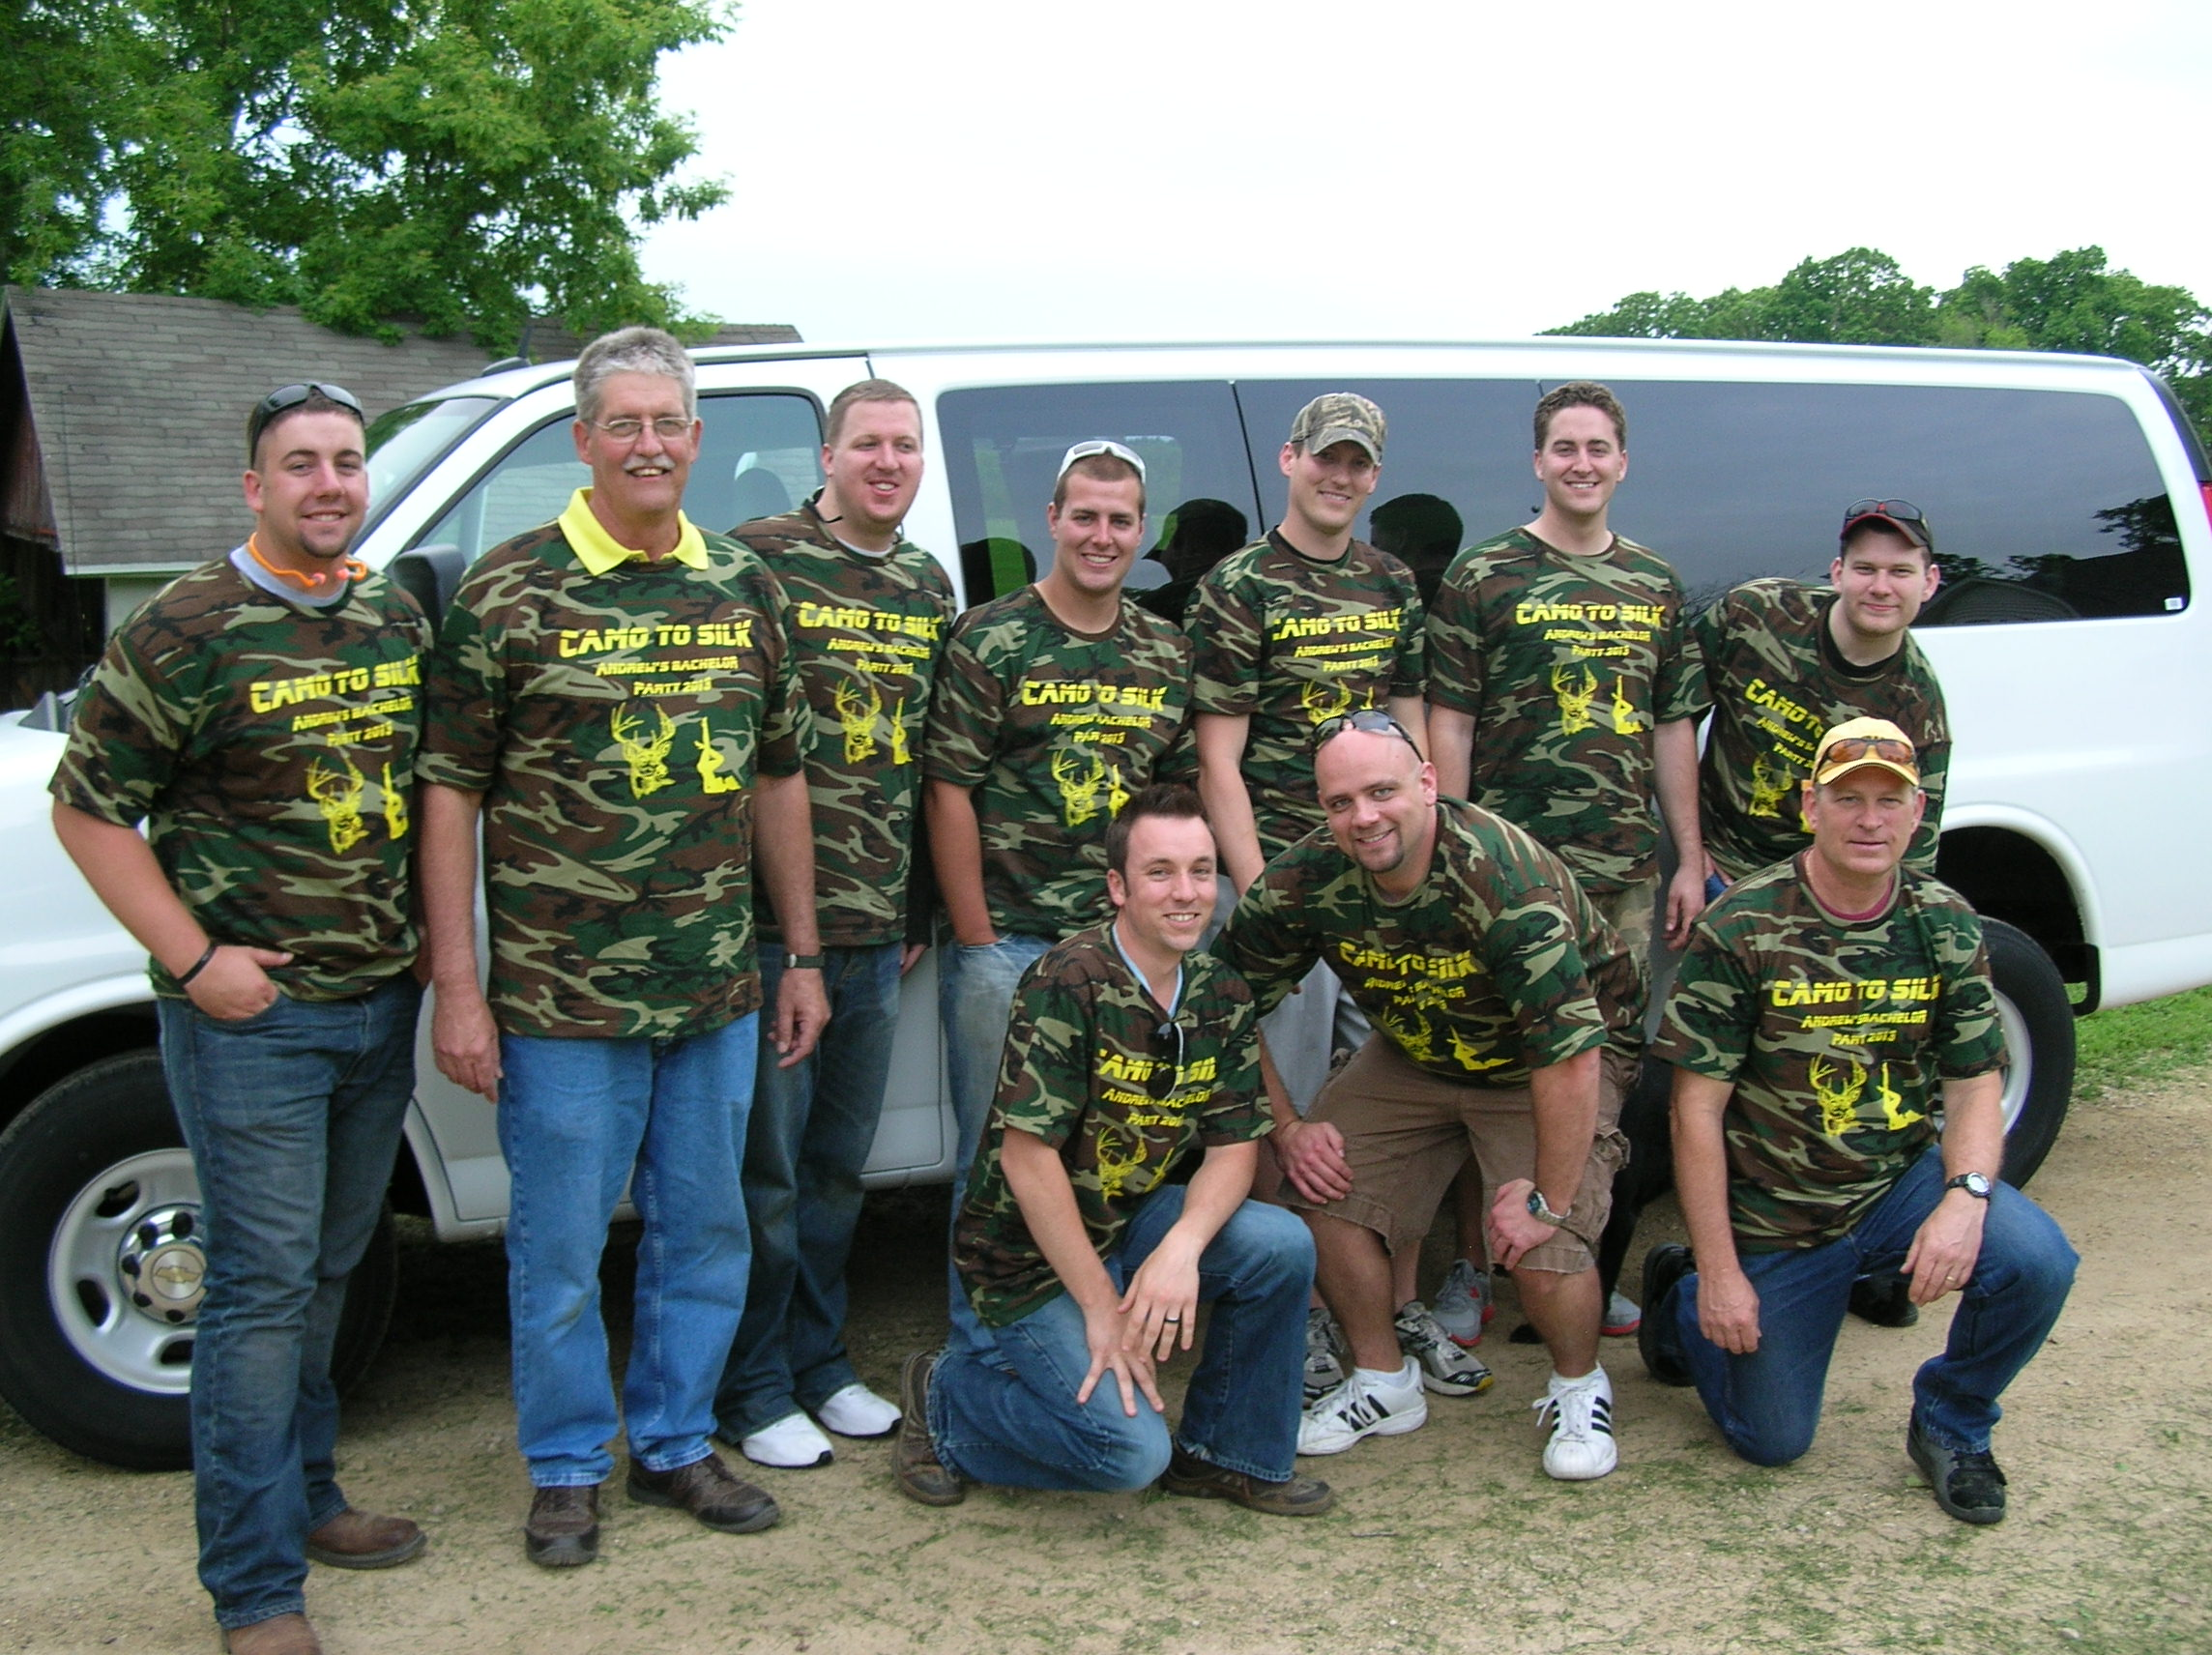 Custom T Shirts For Andrews Bachelor Party 2013 Camo To Silk